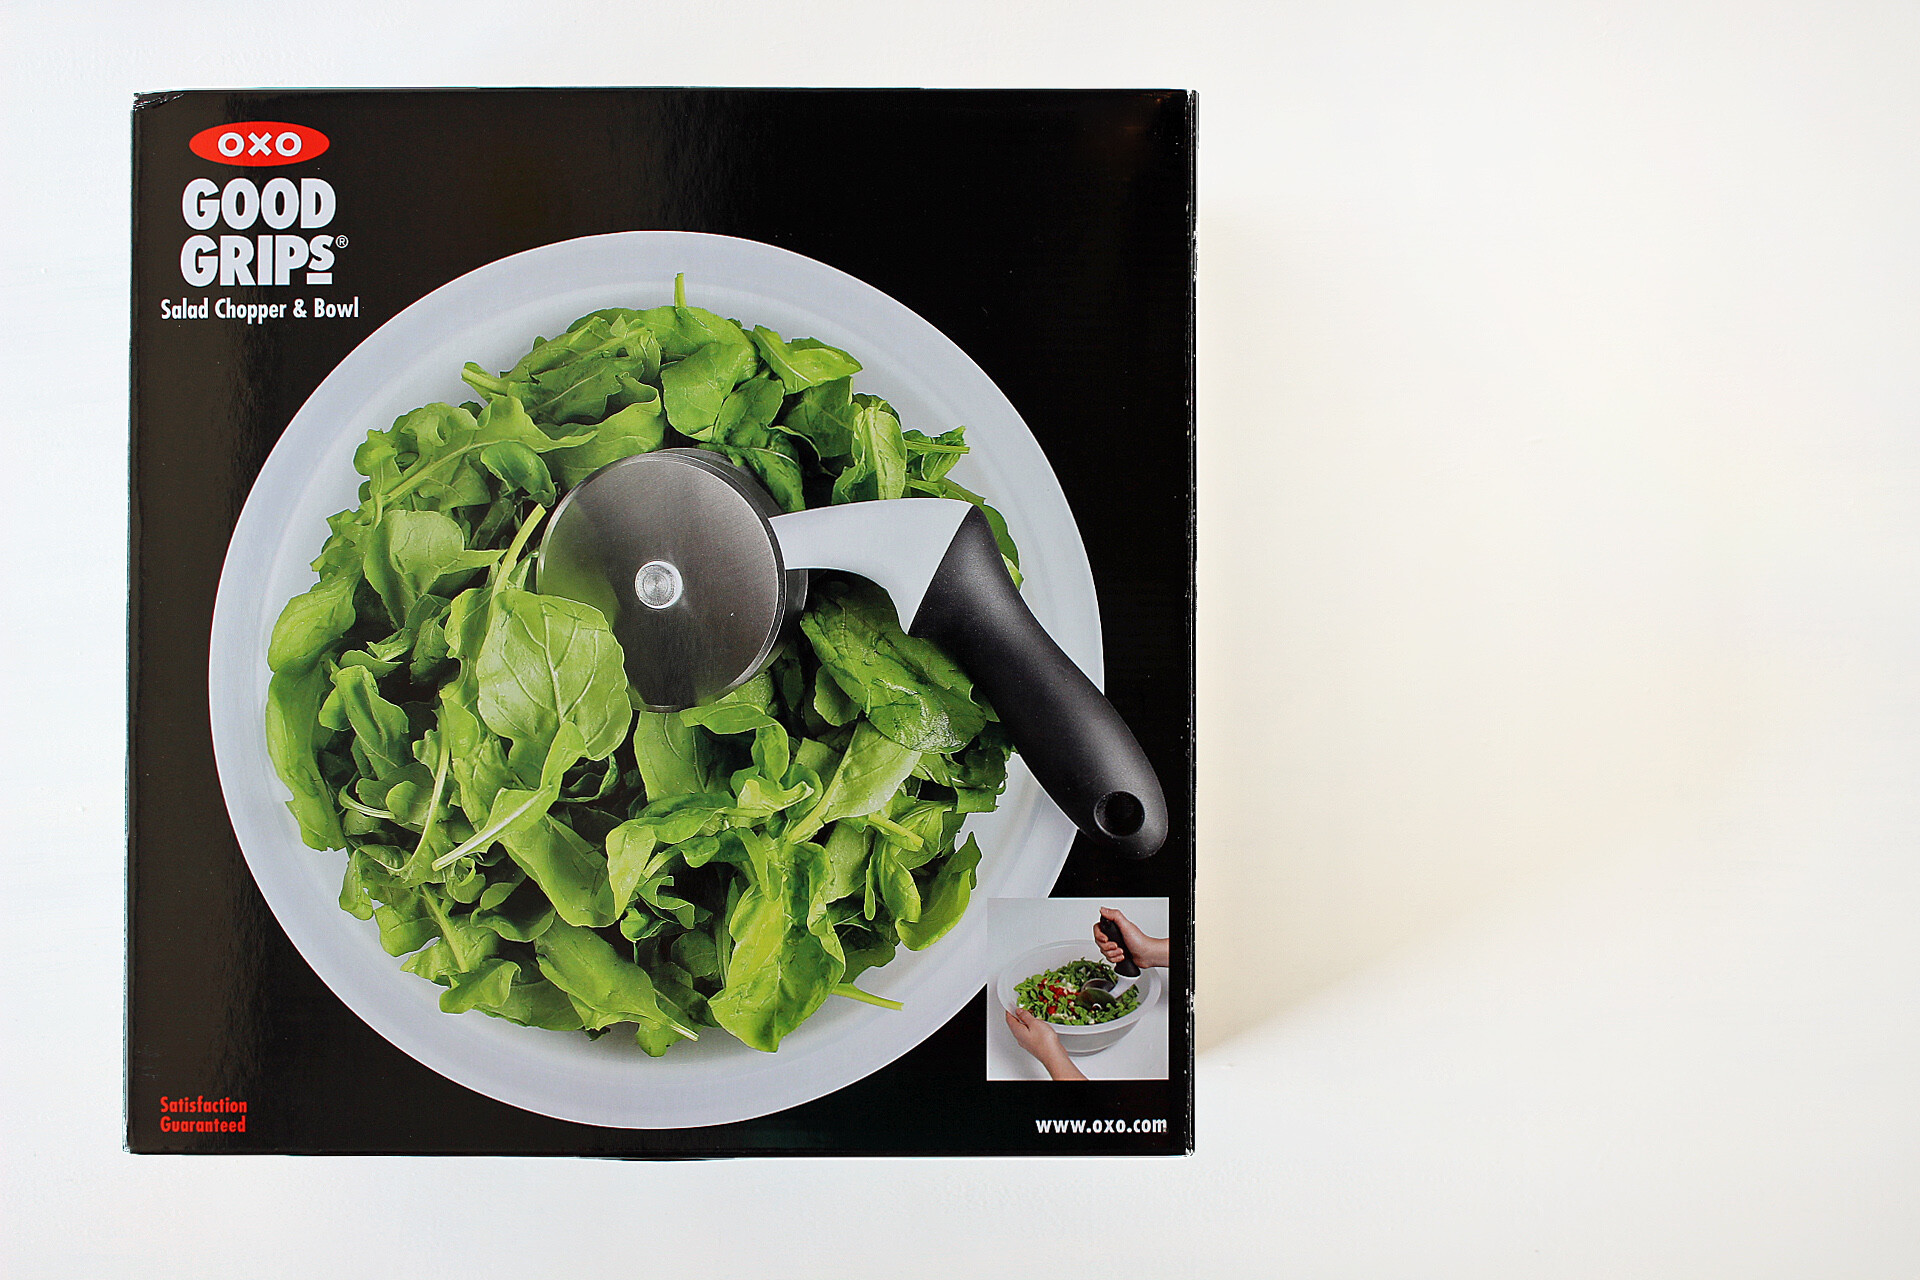 Product Review: OXO Salad Chopper and Bowl